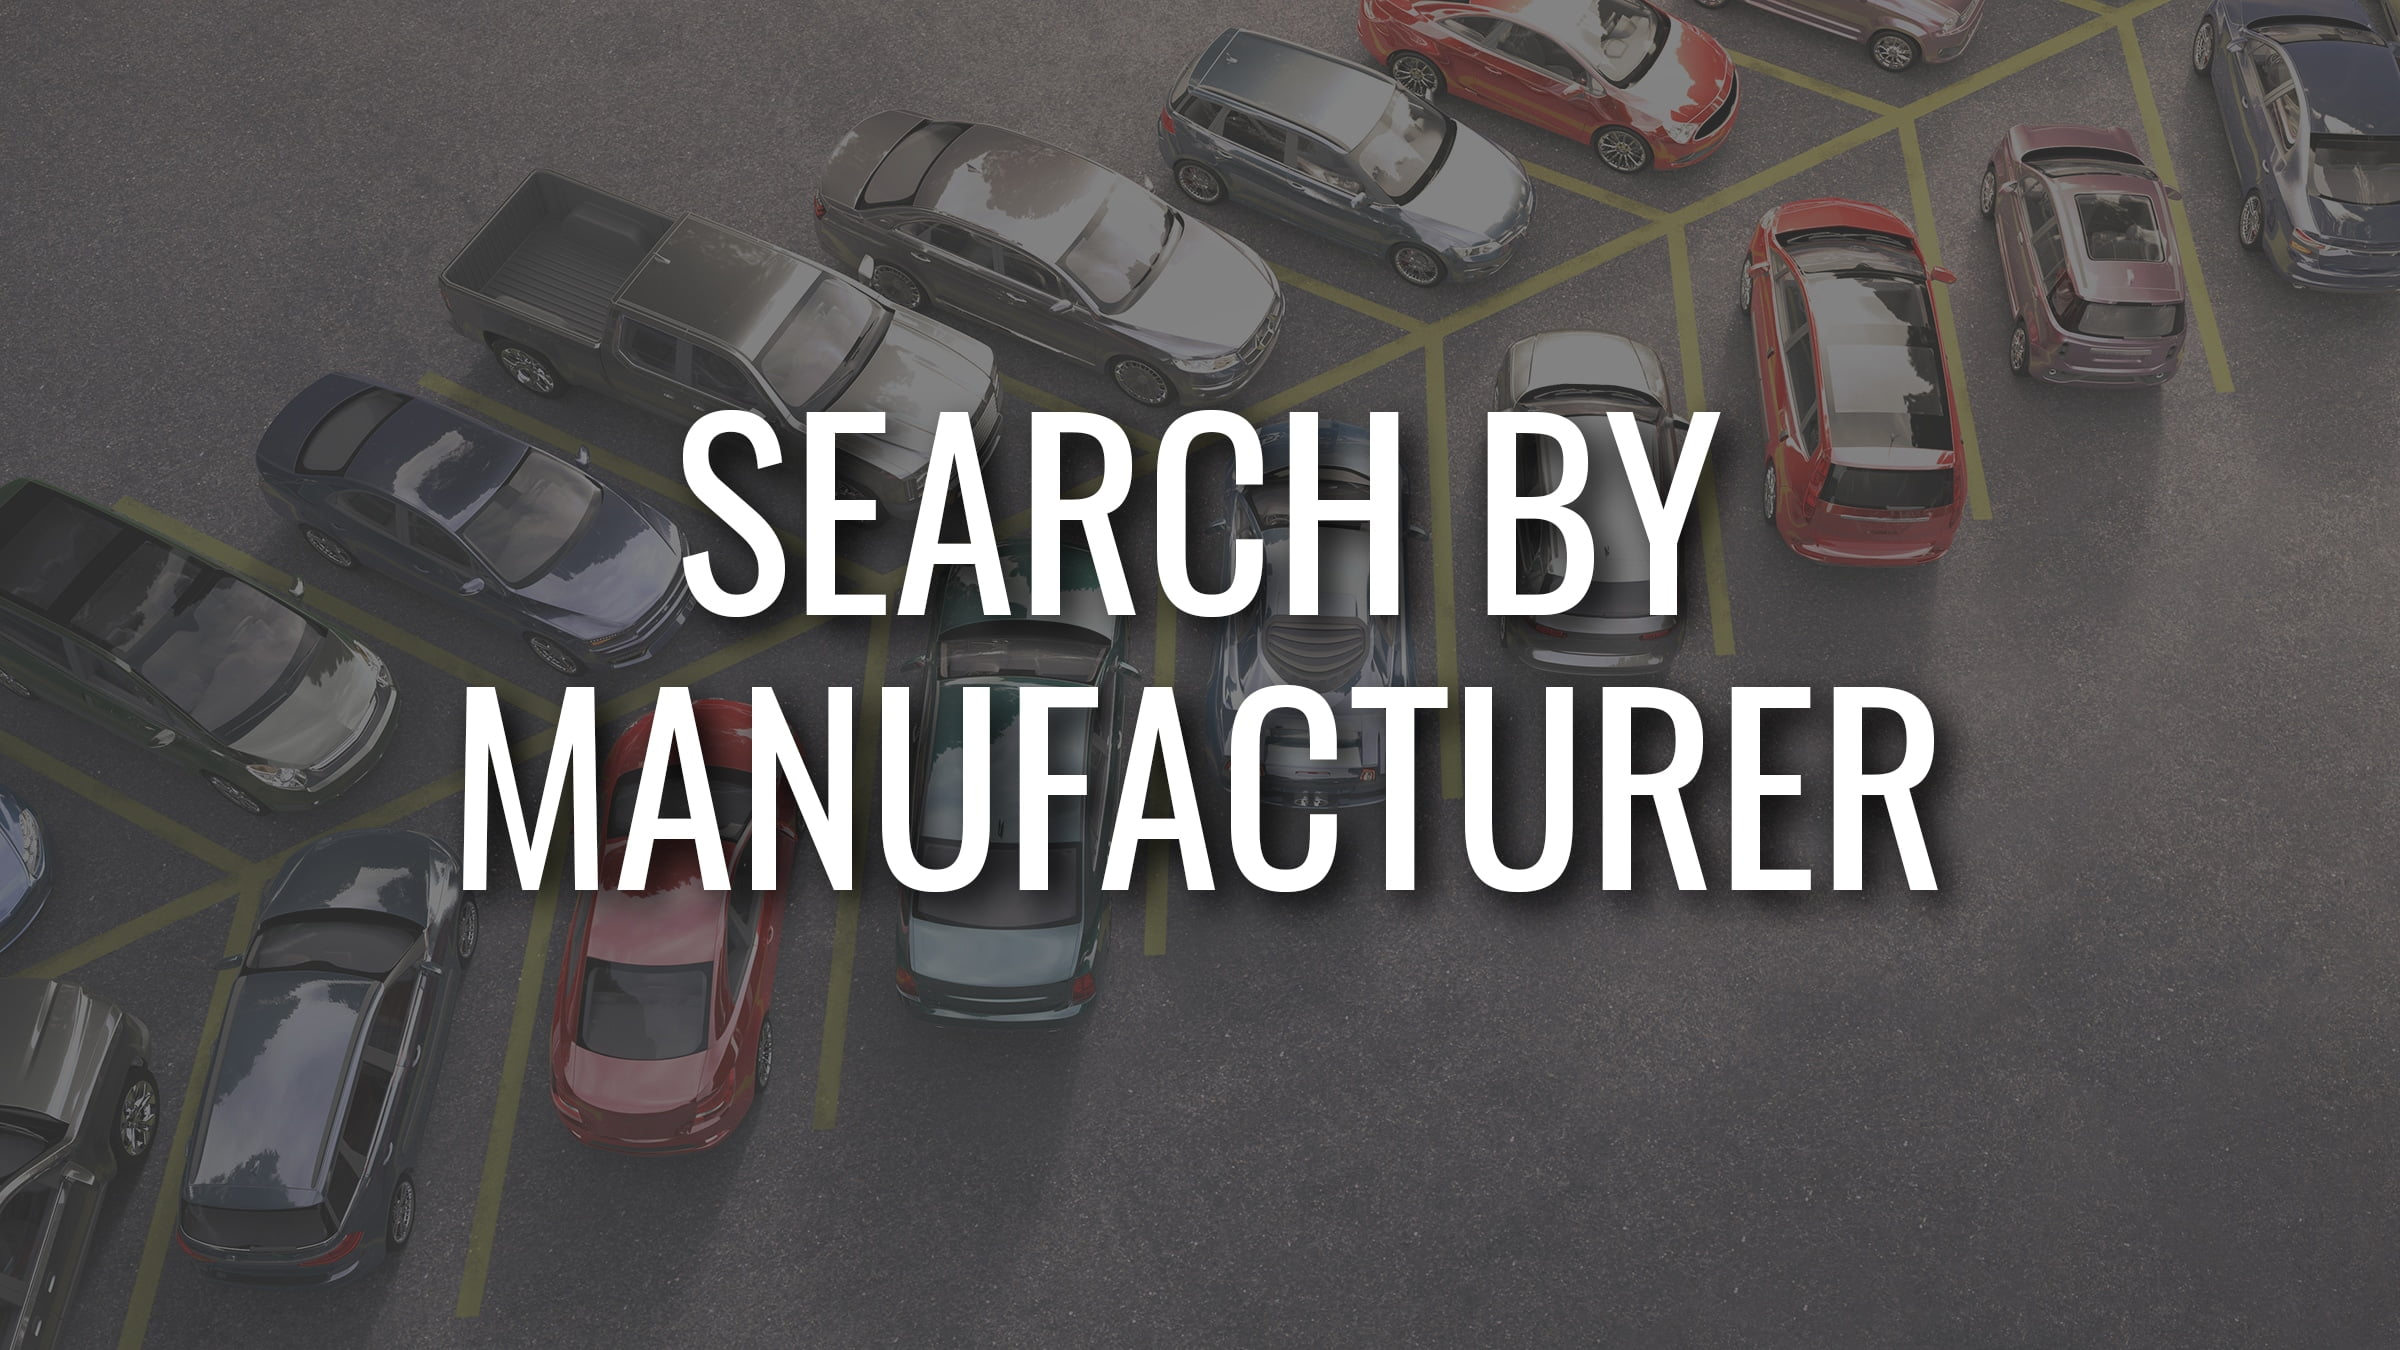 Grid-Search-by-Manufacturer-1.1